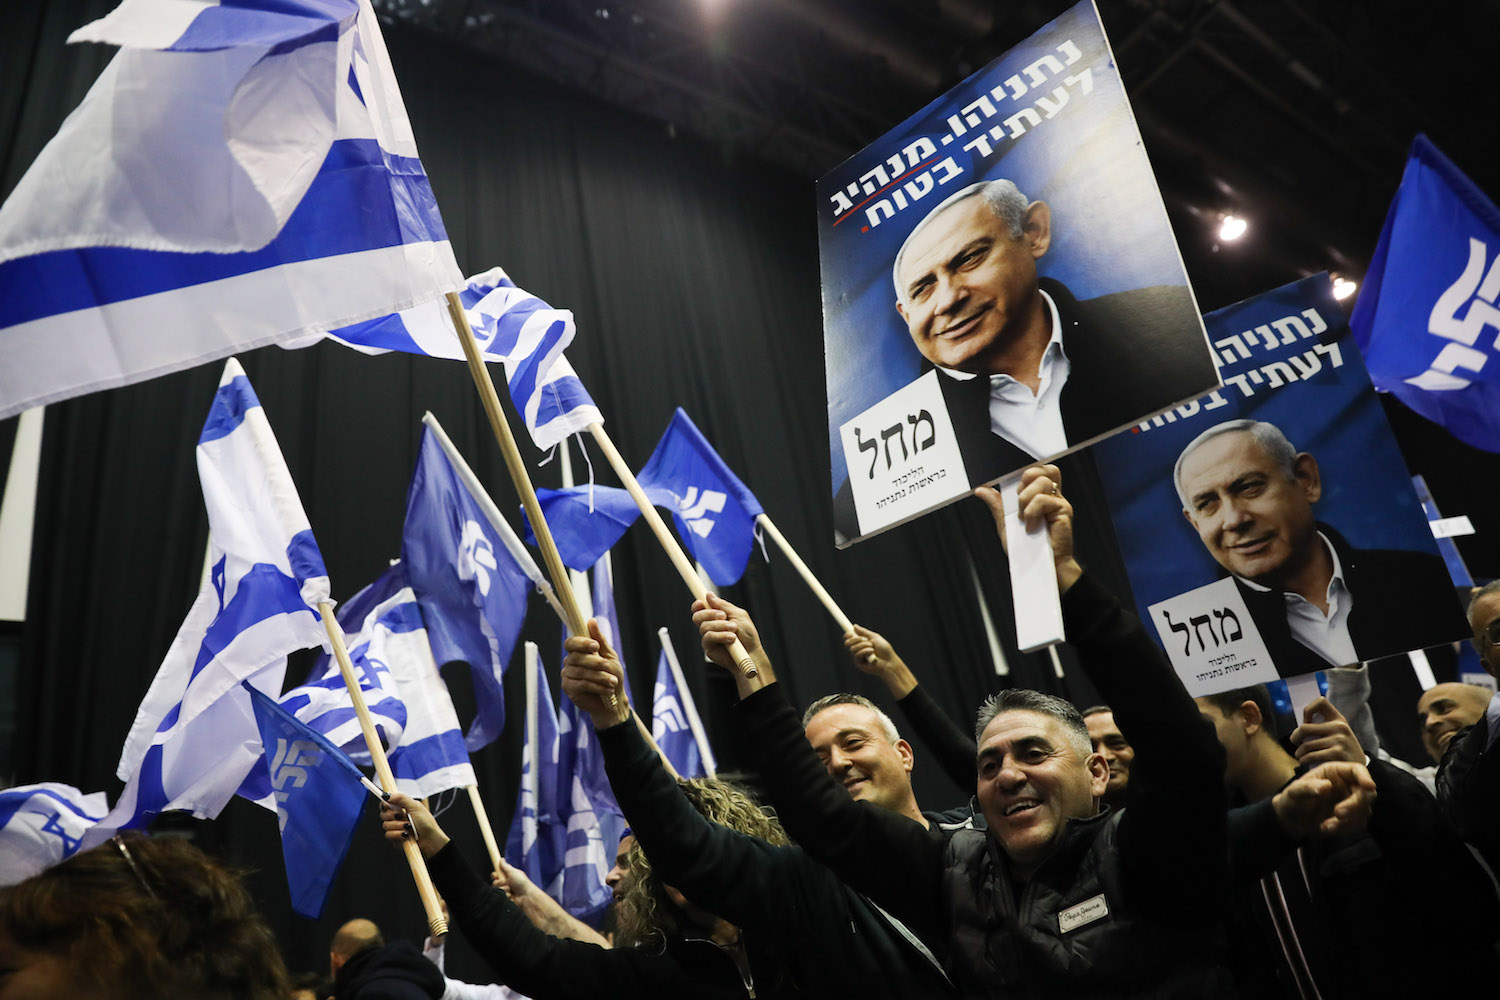 Likud supporters react to the results of the exit polls at Likud headquarters on election night in Tel Aviv, March 2, 2020. (Olivier Fitoussi/Flash90)